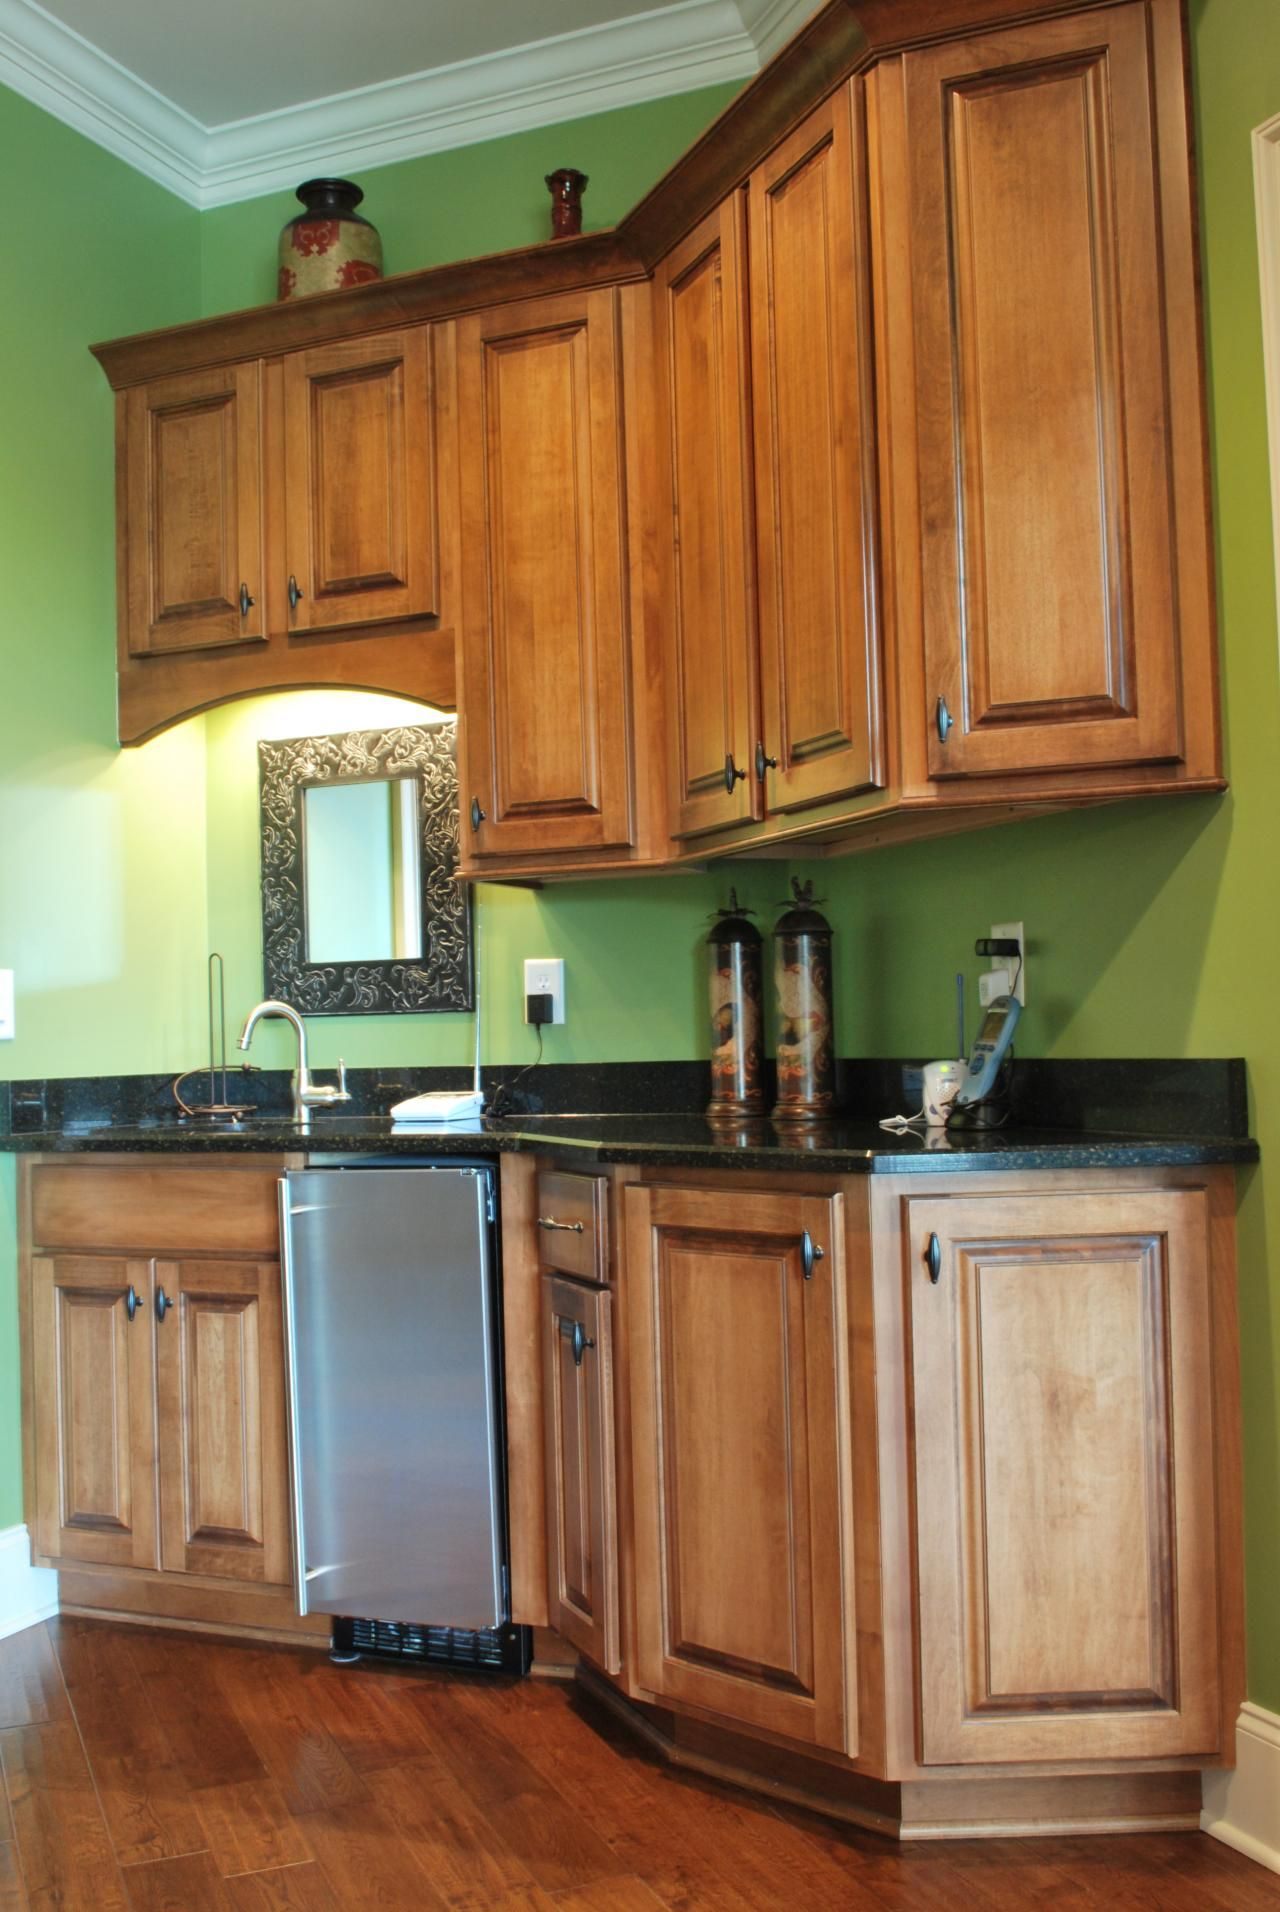 Shiloh Cabinetry (With images) | Shiloh cabinetry, Kitchen cabinets, Home decor